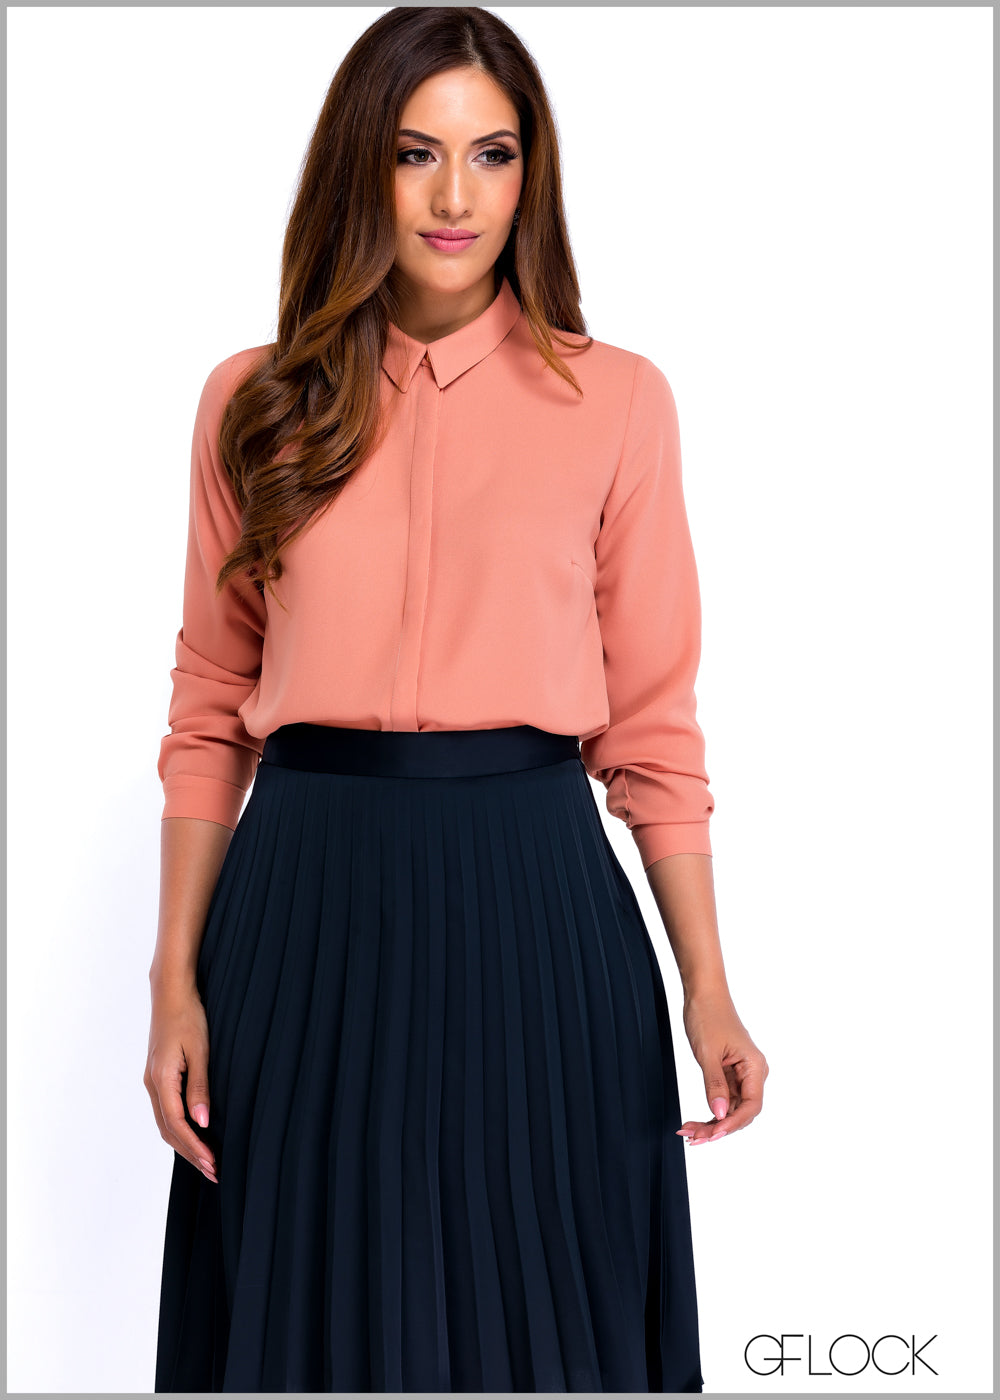 Collared Long Sleeve Work Wear Top